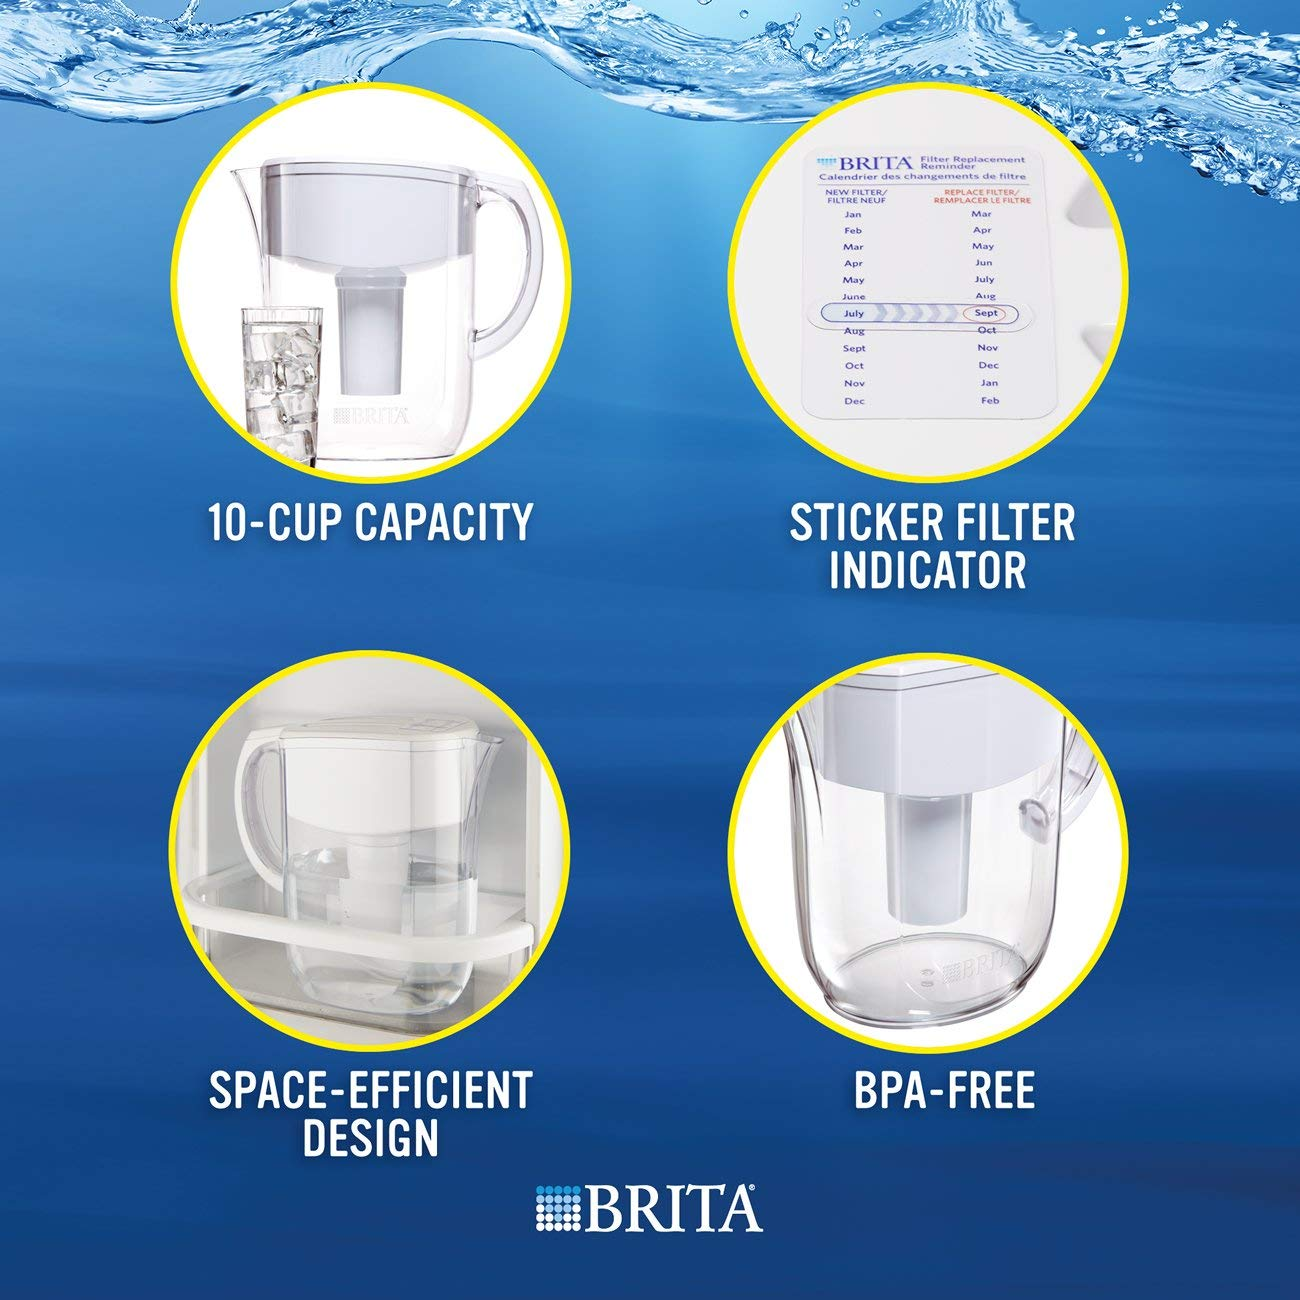 Brita Large 10 Cup Everyday Water Pitcher with Filter - BPA Free - White by Brita (Image #4)